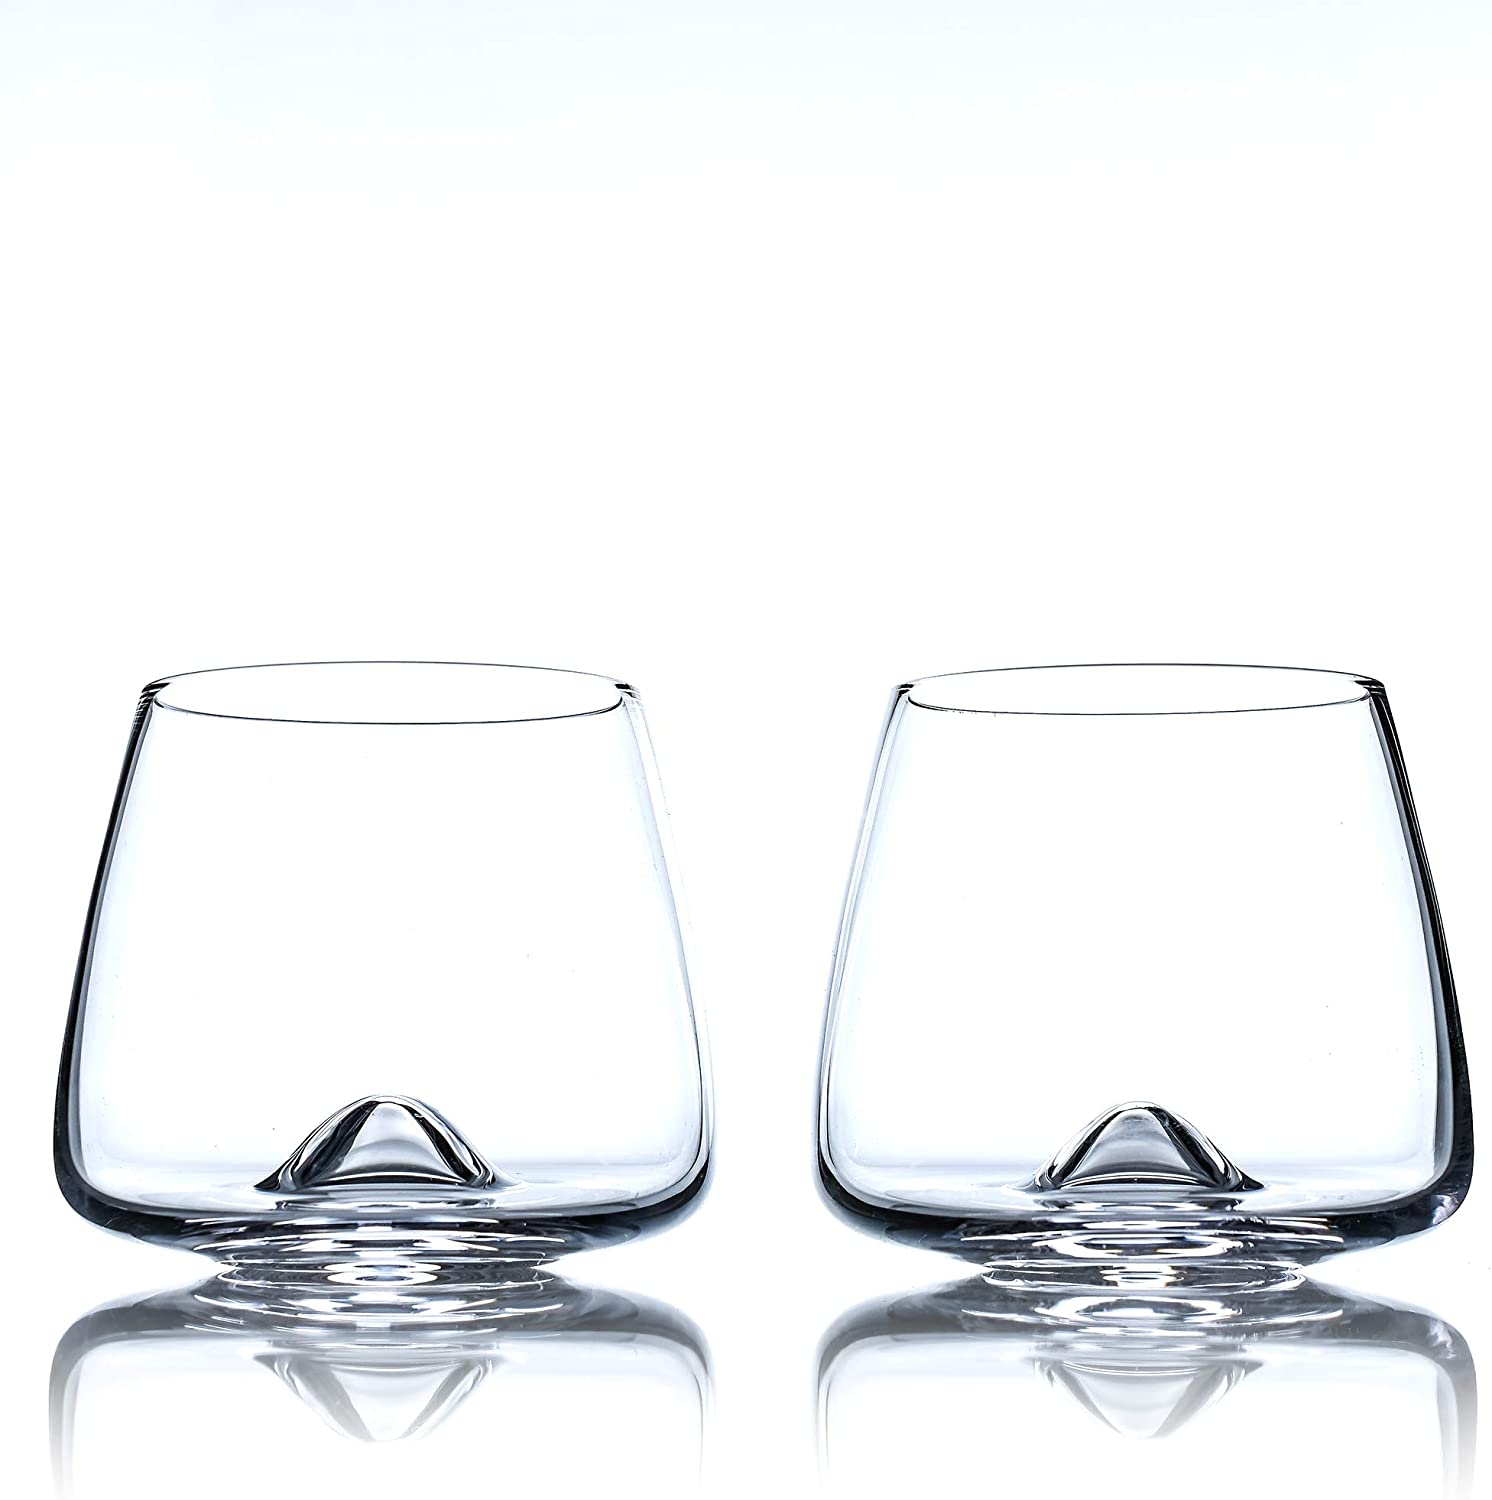 Greenline Goods Whiskey Glasses Set Large 14 Oz Crystal Glass Hand Blown Set Of 2 Uniquely Designed Bourbon Scotch Tasting Glasses Old Fashioned Cocktail Rocks Wisky Glasses Old Fashioned Glasses